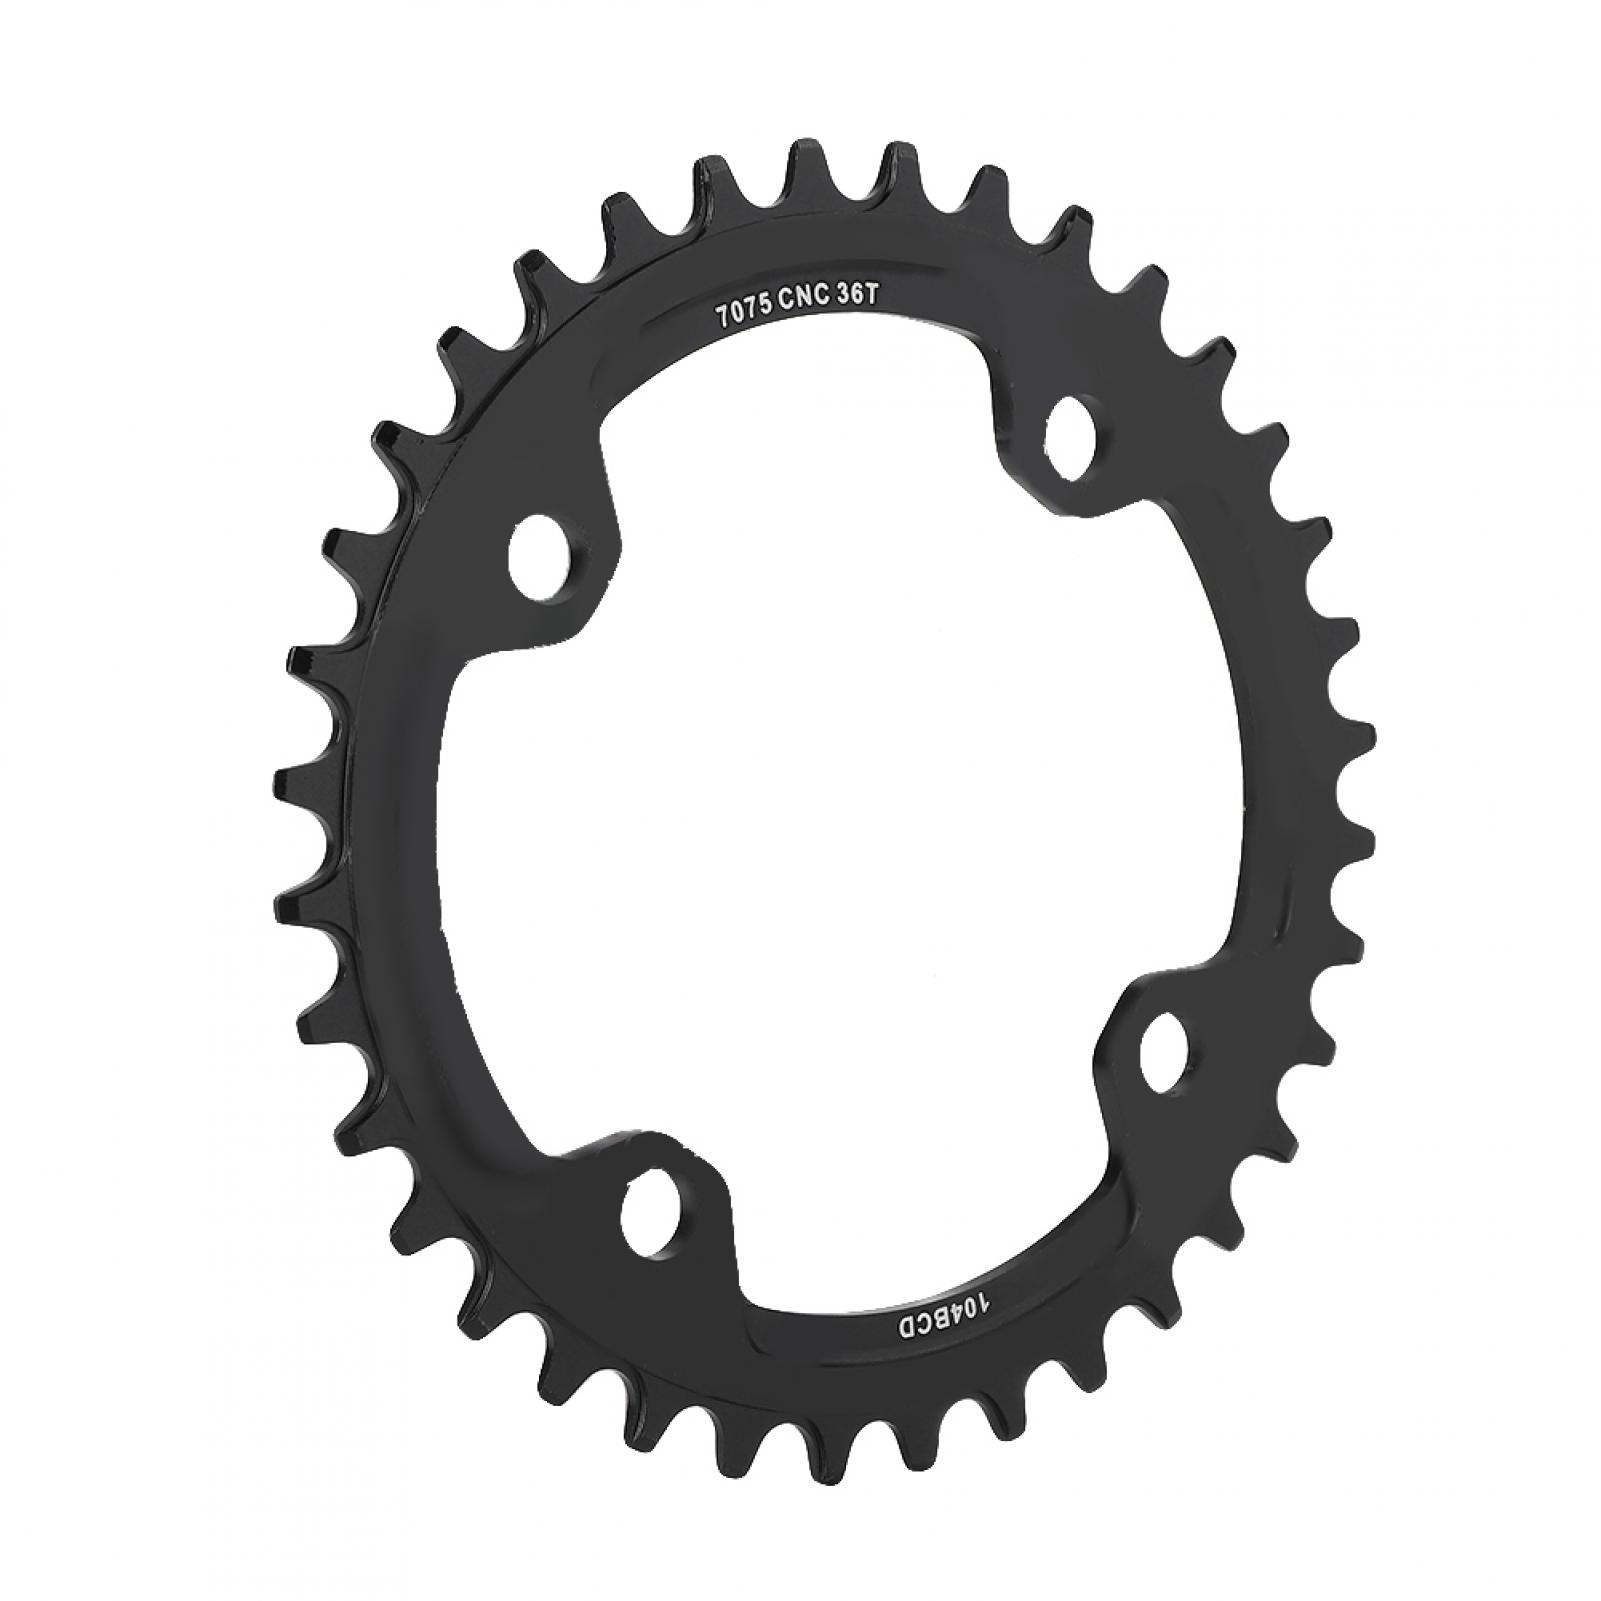 MTB-Bike-Narrow-Wide-Round-Oval-Chainring-Ring-104-130mm-22-32-34-36-38-44-53T thumbnail 50